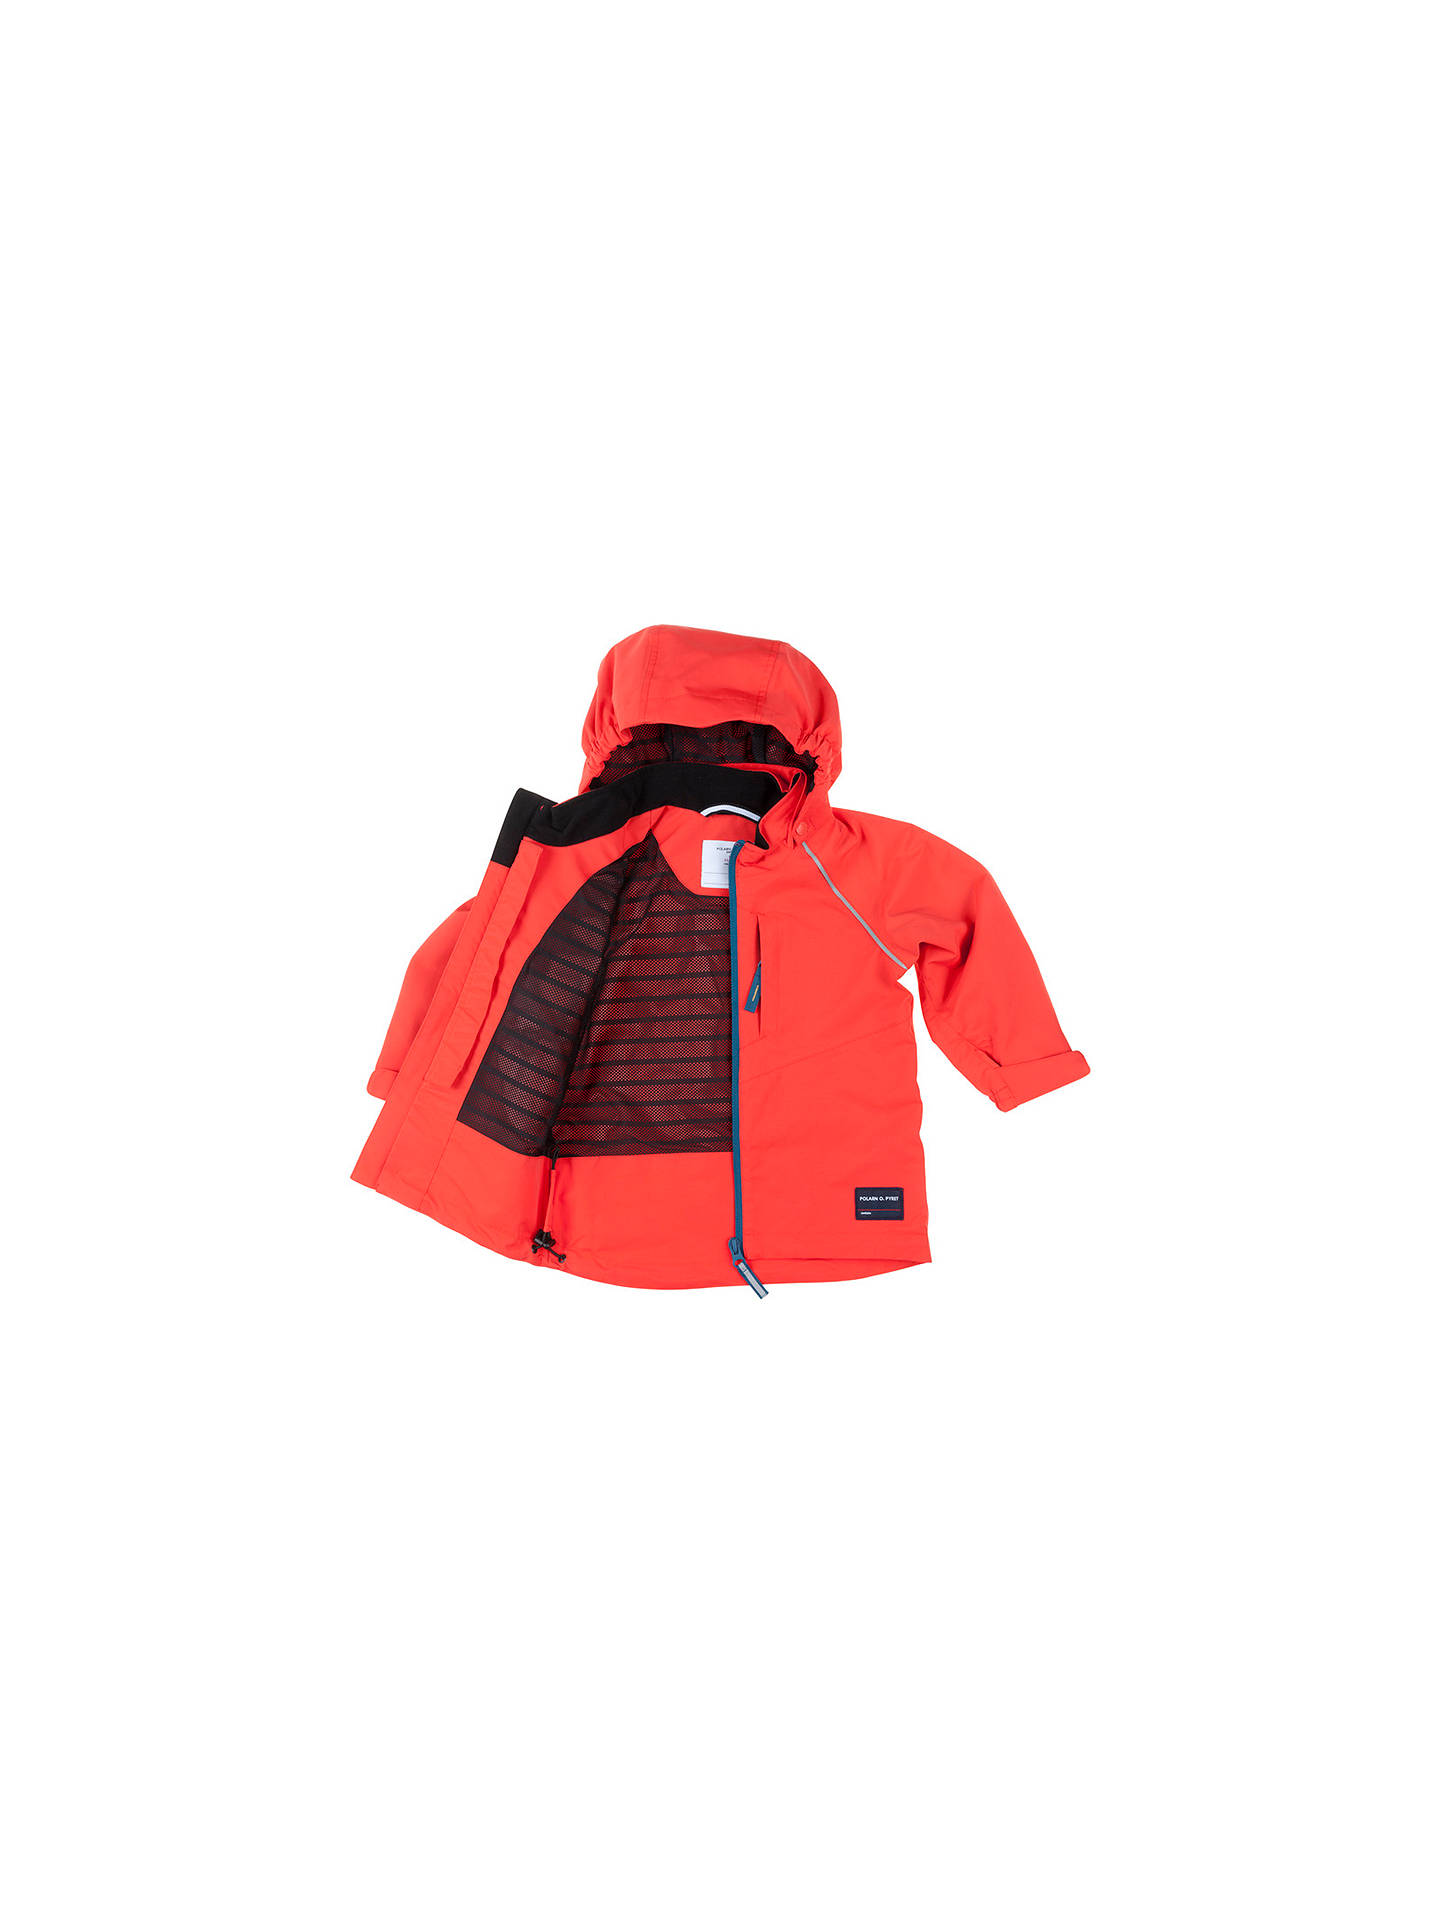 530149f9b Polarn O. Pyret Baby Shell Coat at John Lewis   Partners